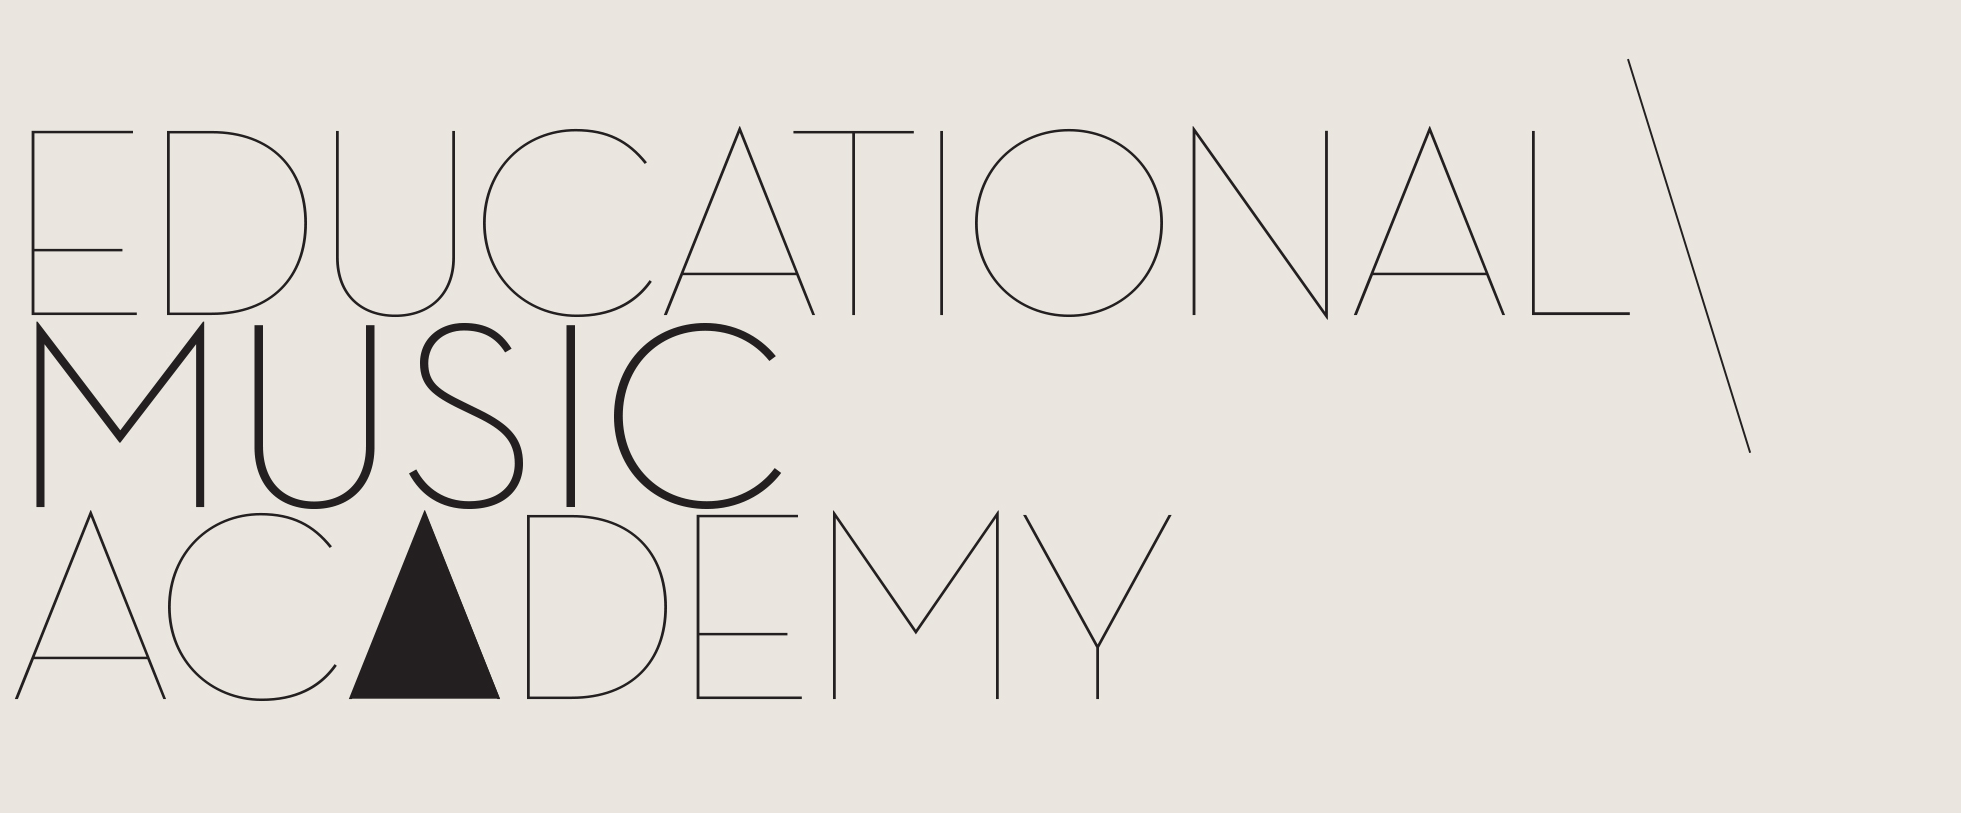 educational music academy logo